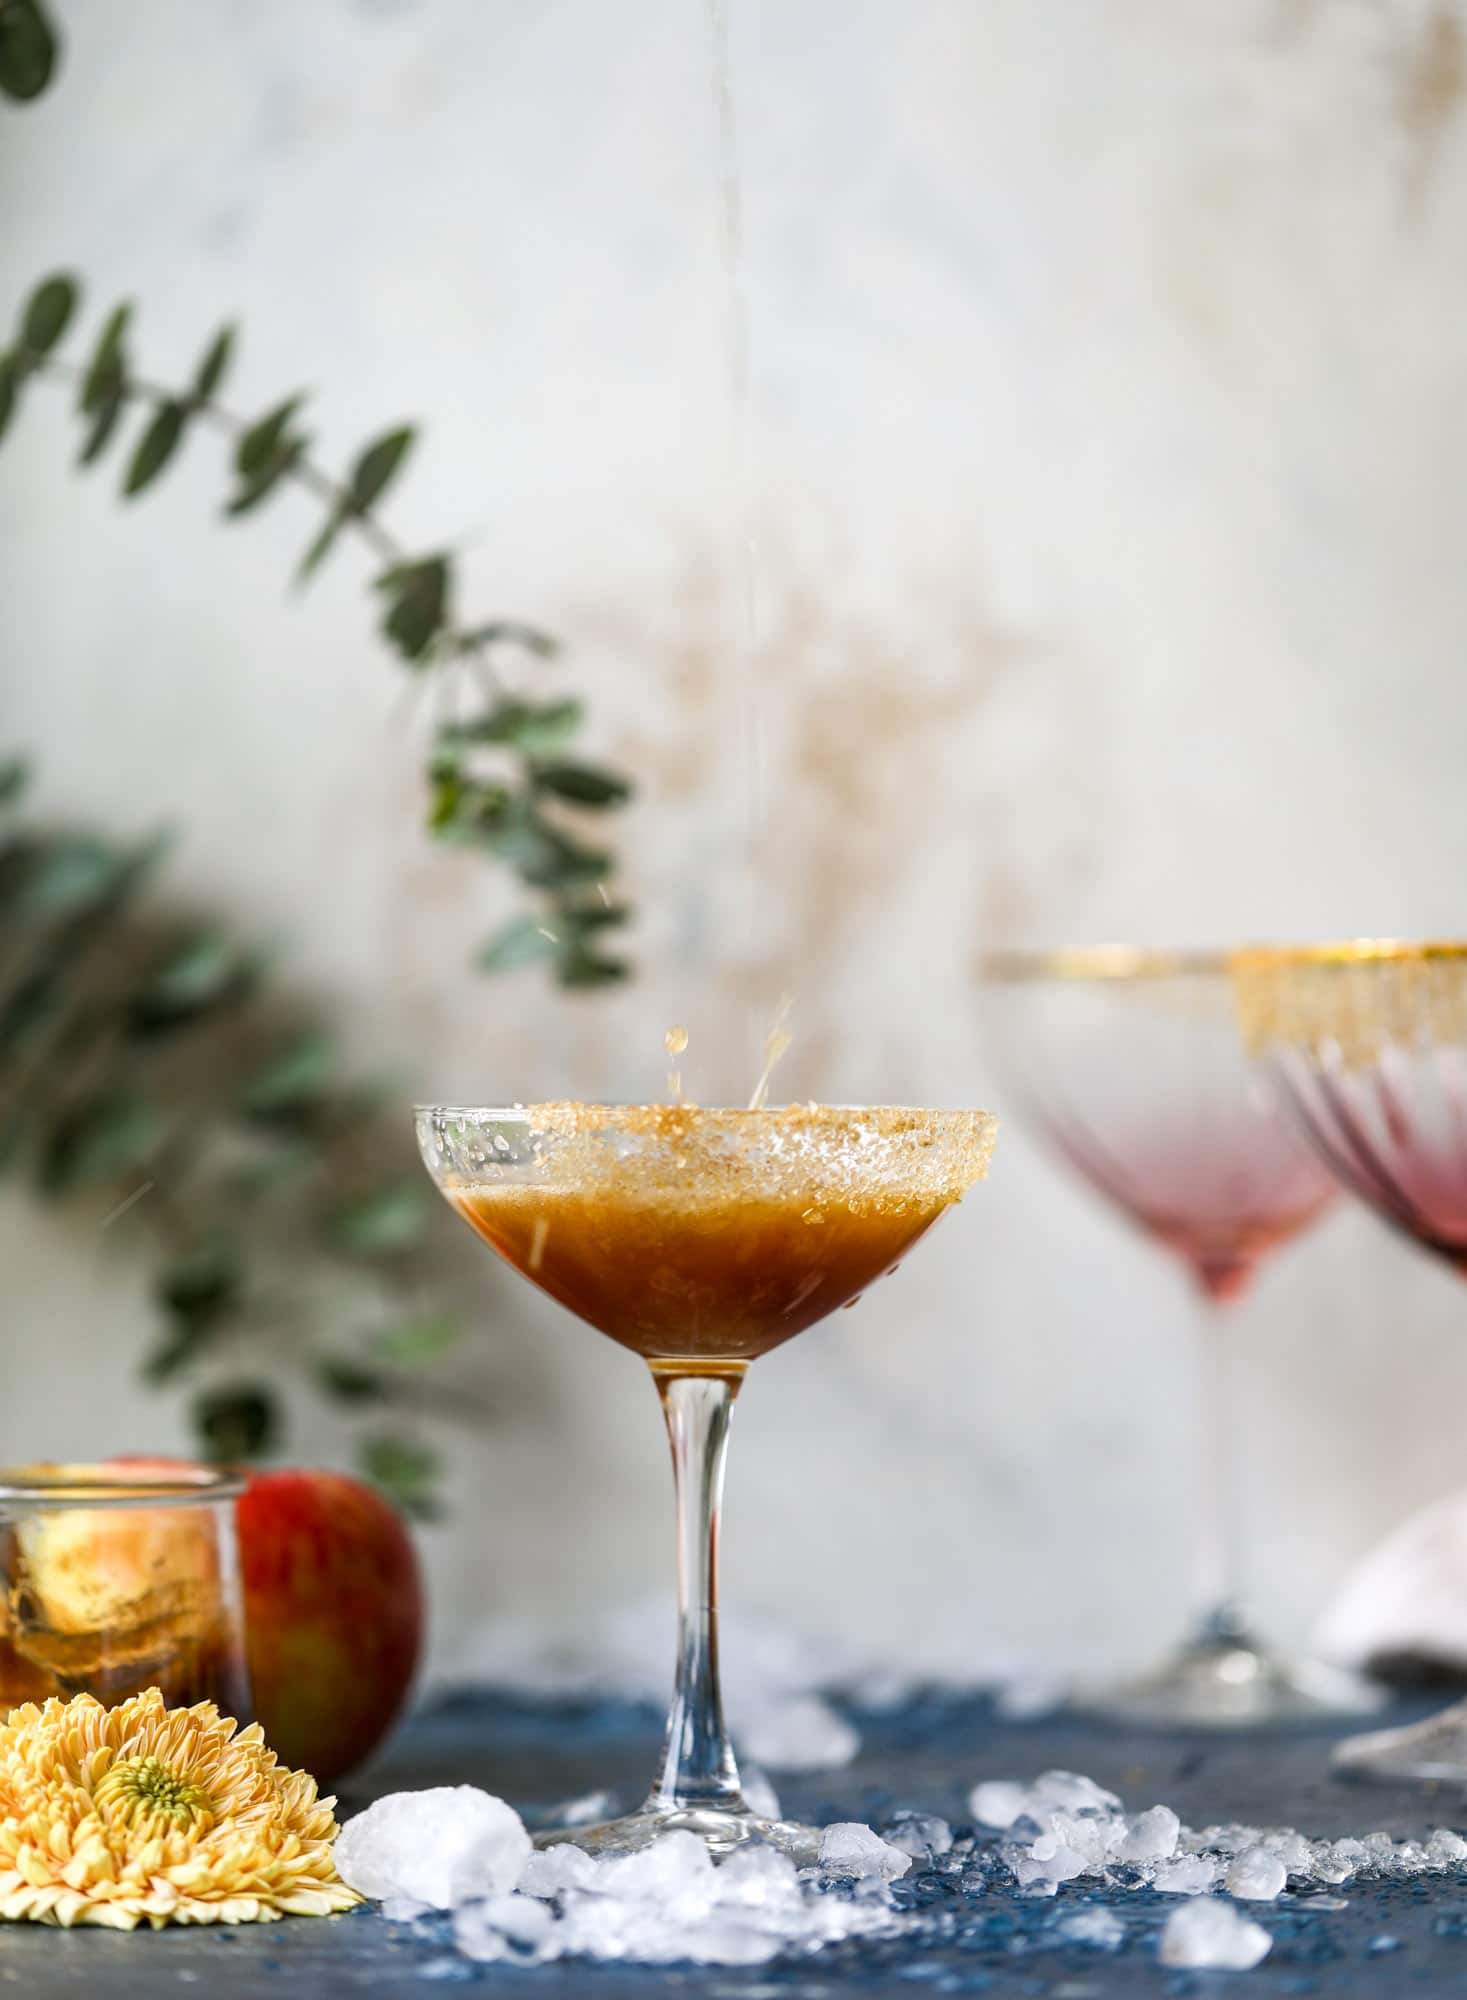 This apple butter cocktail is perfect for the fall season and incredible delicious! It's super simple too: you need apple butter, bourbon and ginger ale or ginger beer. A cinnamon sugar rim and a fig garnish make it super pretty. YUM. I howsweeteats.com #apple #butter #cocktail #bourbon #fizz